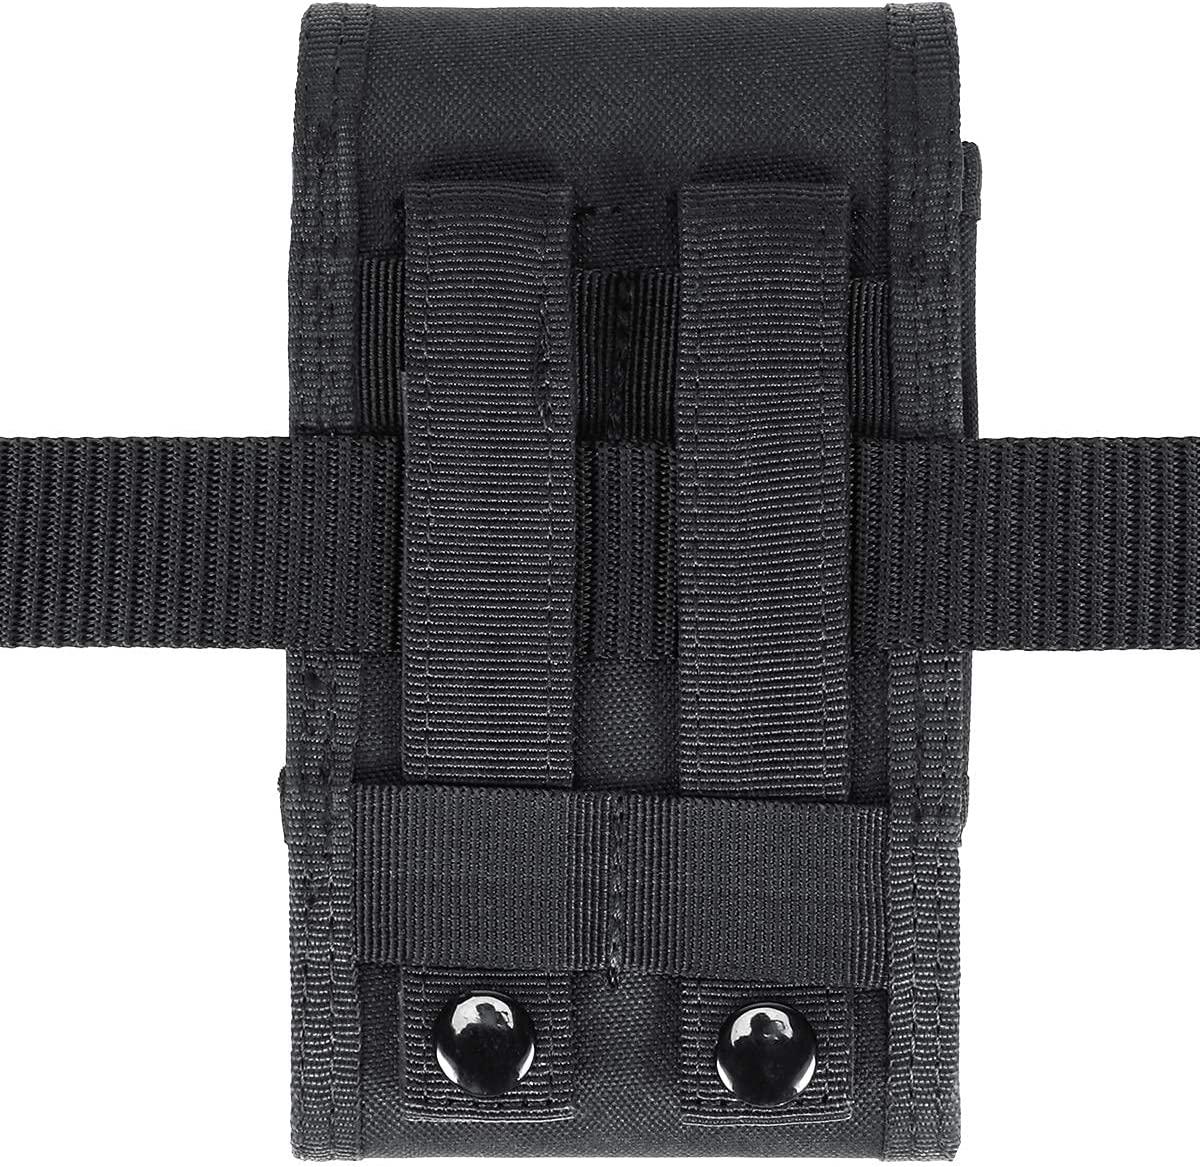 IronSeals Double Capacity Phone Holster, Tactical Molle Pouch Compact Belt Waist Bag for iPhone 13 Pro Max/13 Pro/13/12 Pro Max/12 Pro/12/11 Pro Max/XS Max/XR/XS/X, Samsung S10/S9 Plus/S9, Size Large